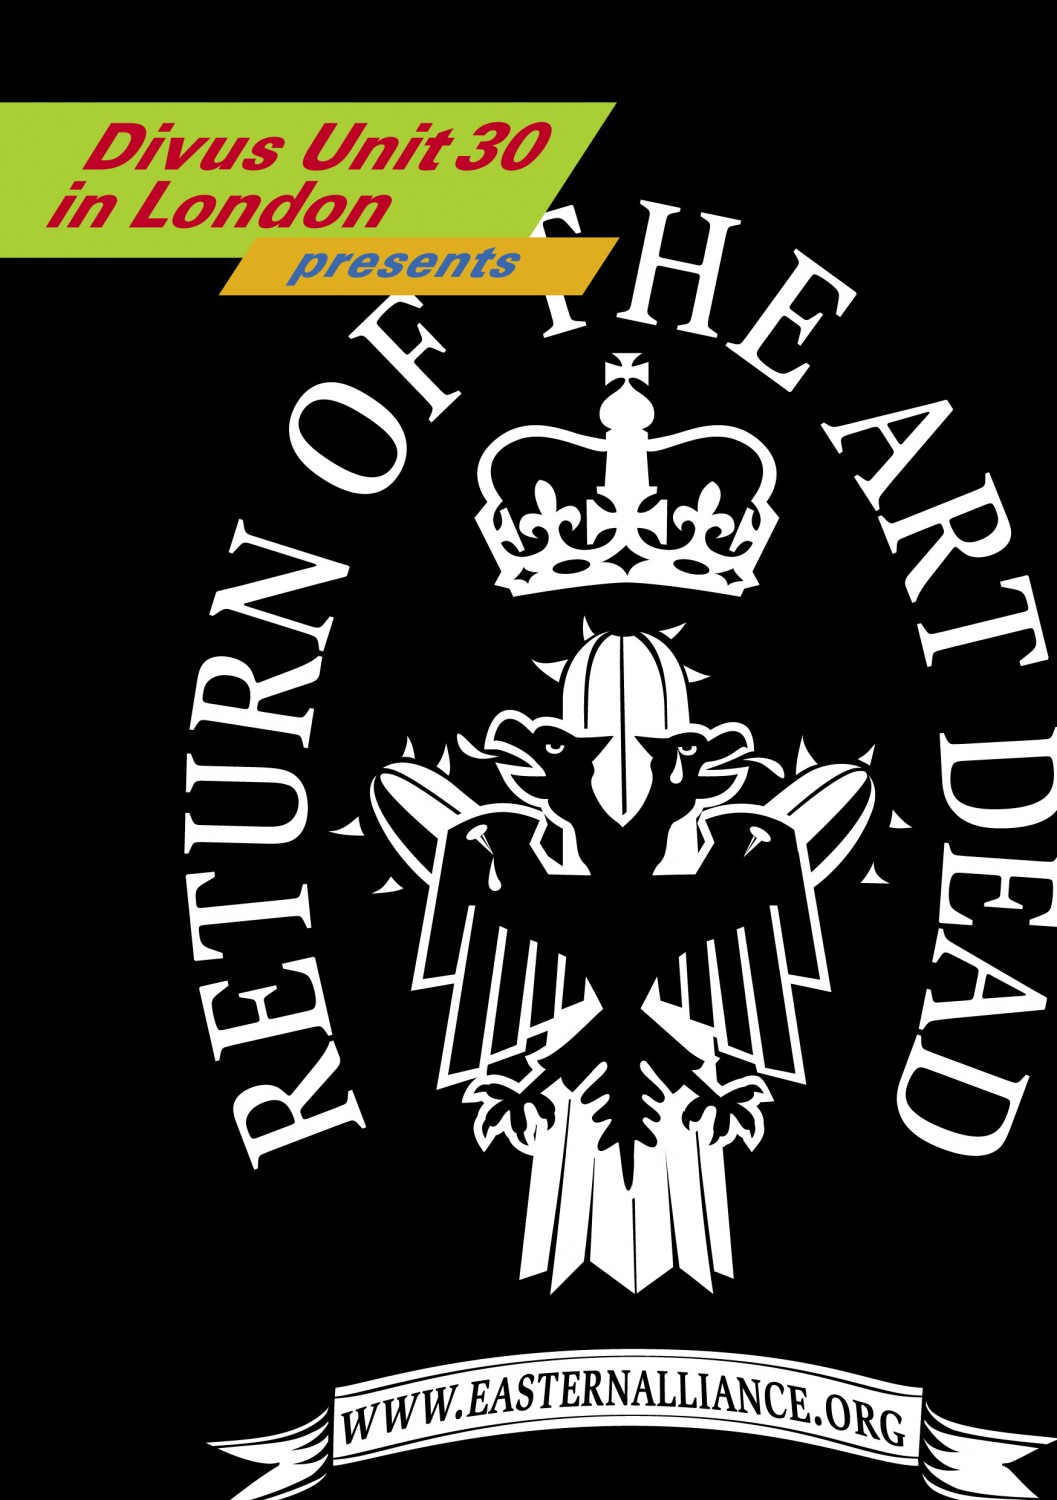 Return Of The Art Dead | Show where we starts at the end